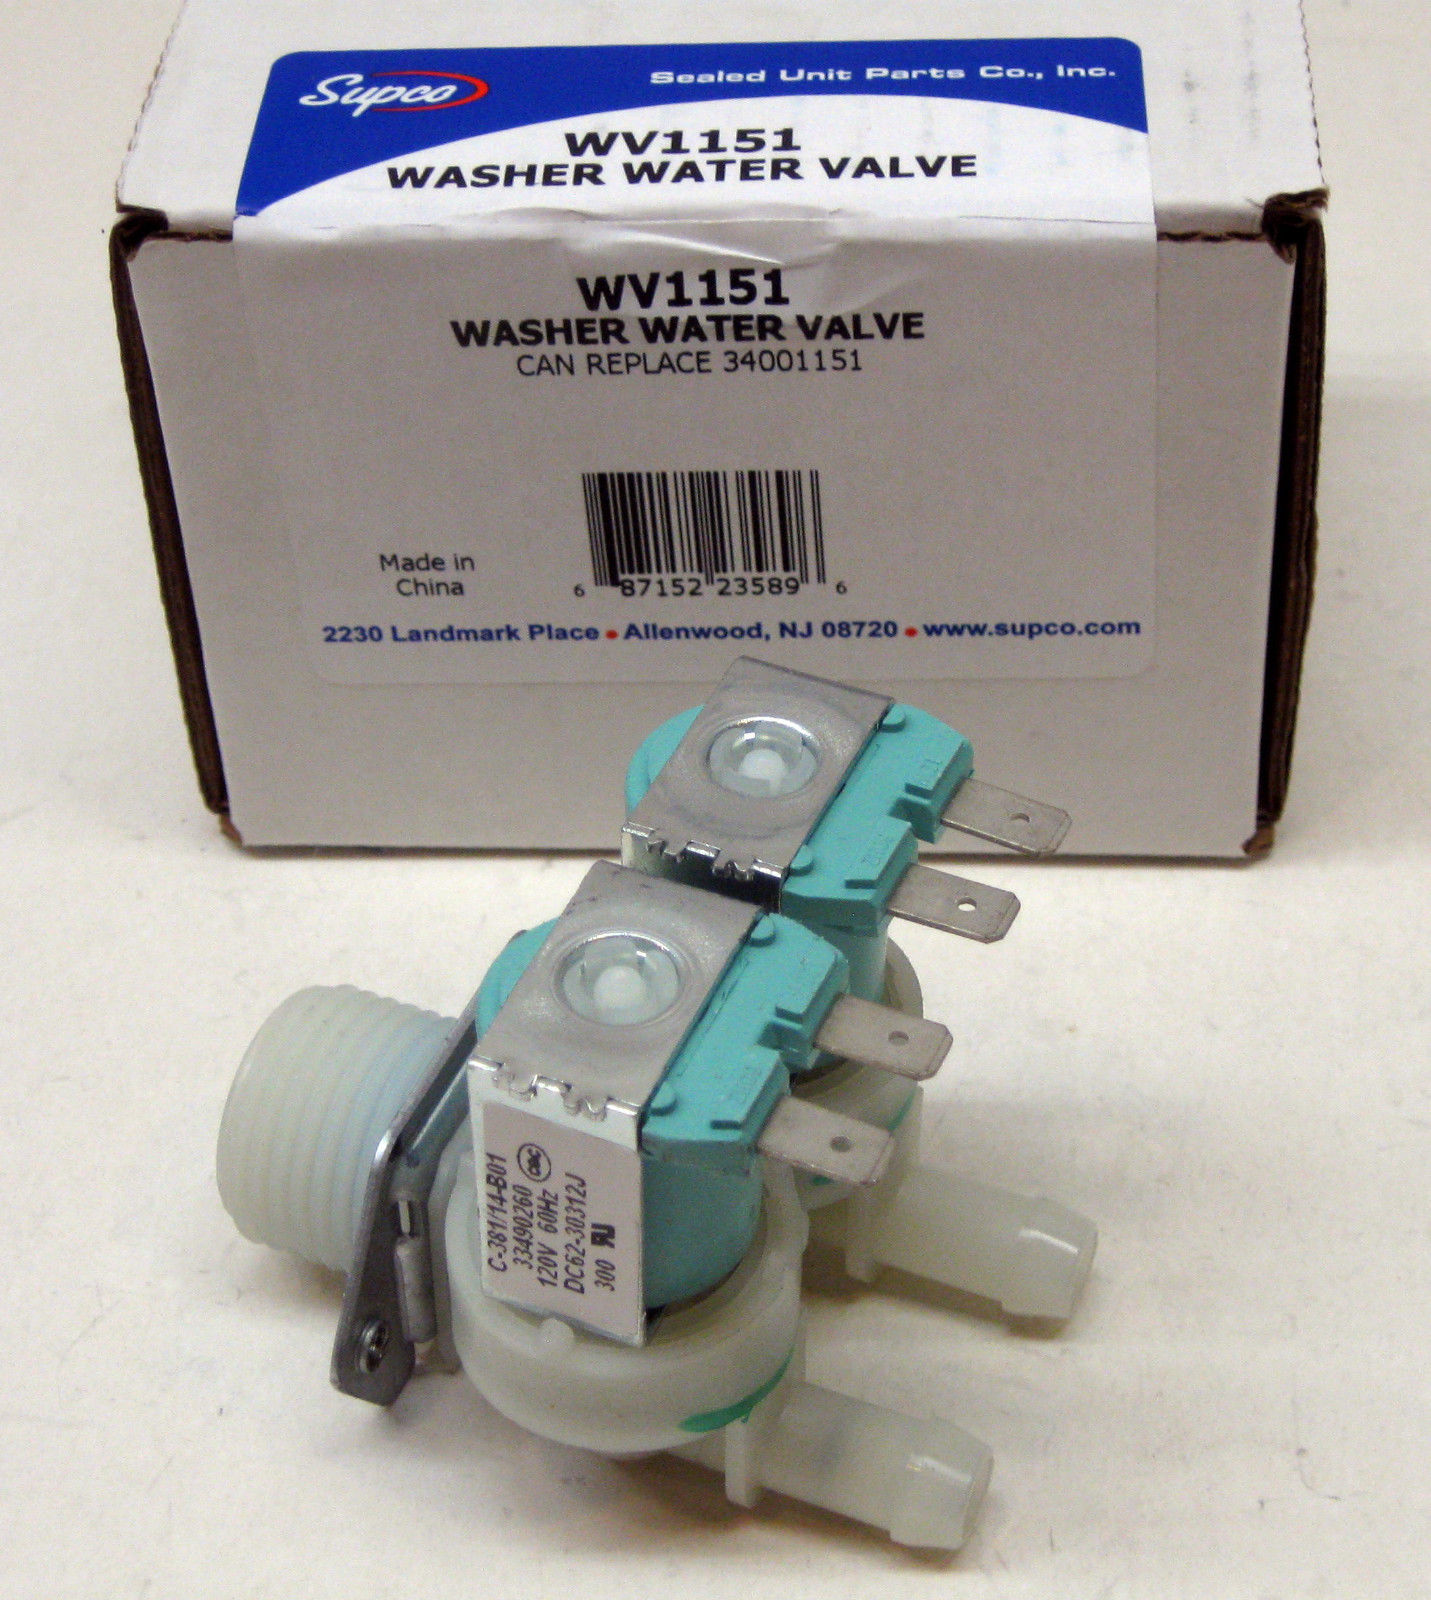 WV1151 for Maytag 34001151 Washer Cold Water Solenoid Valve PS2037108 PS2037108